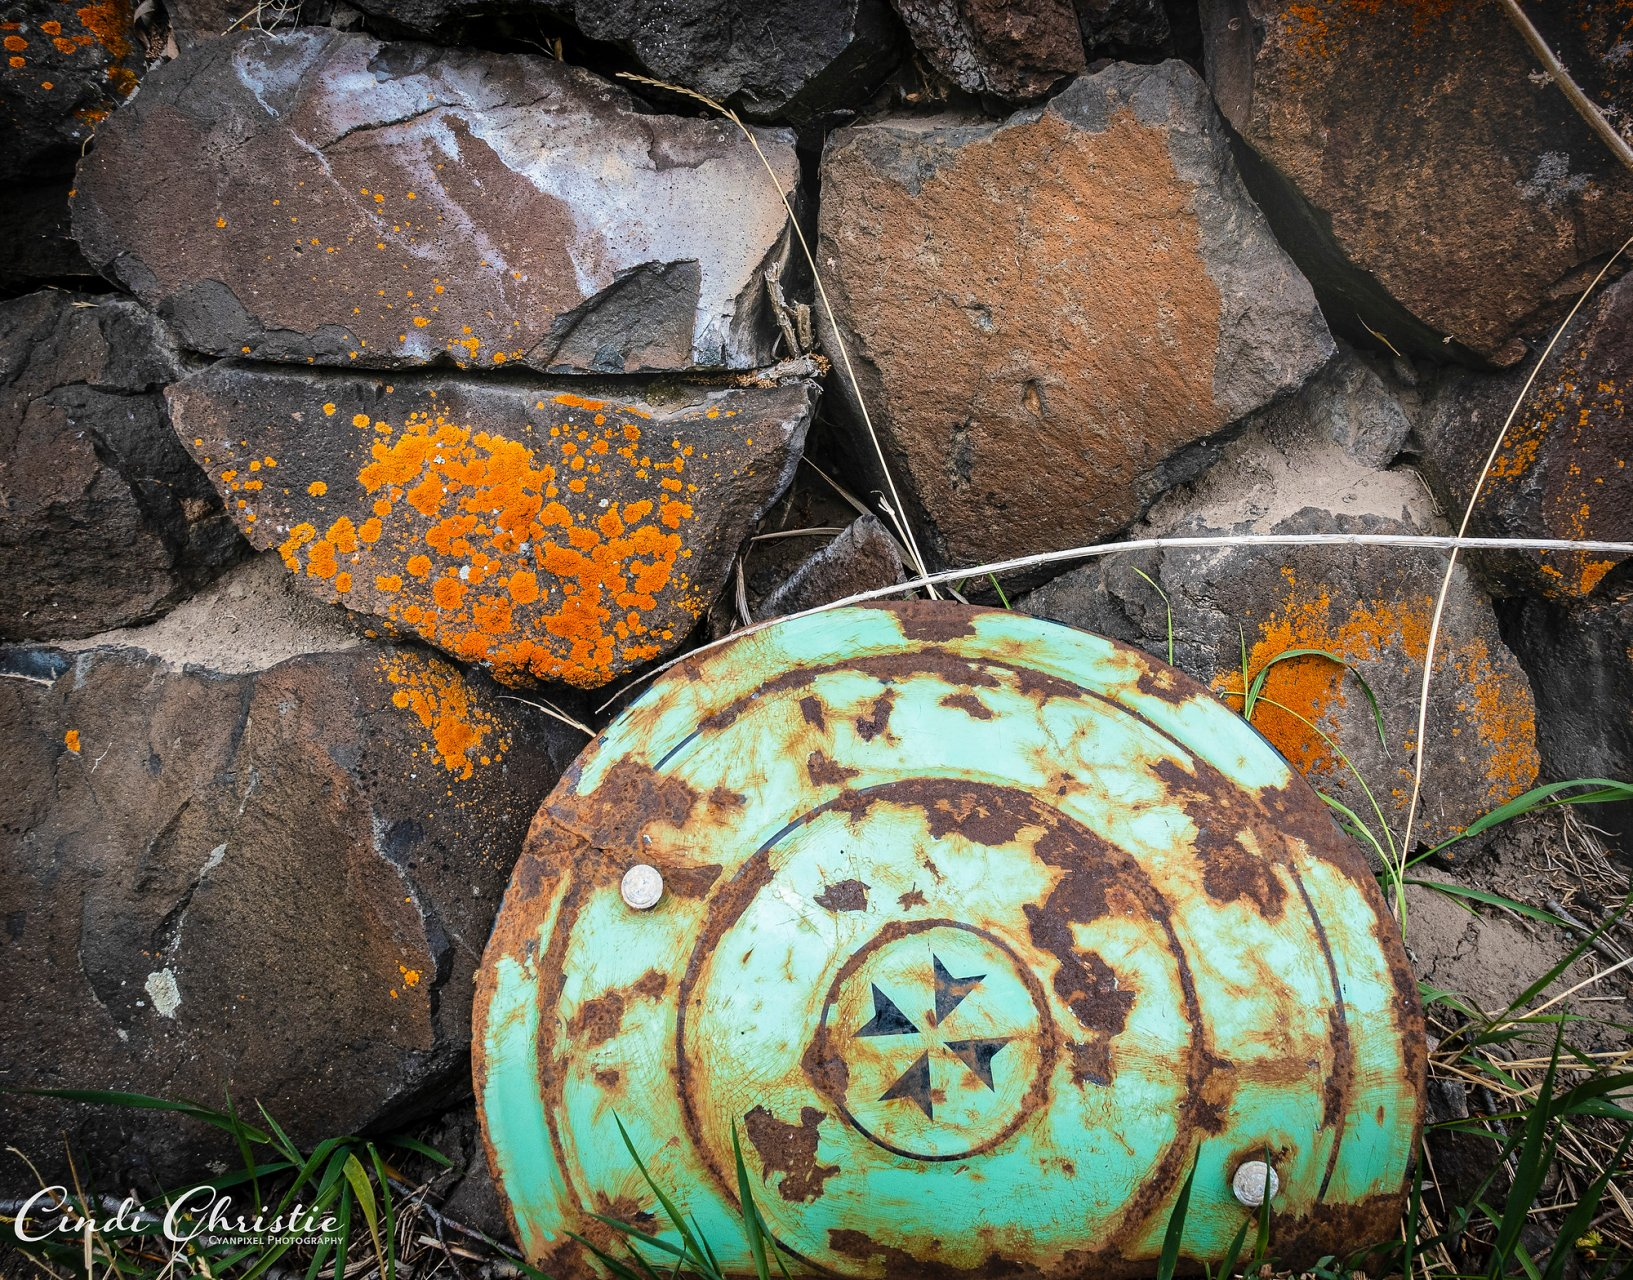 Old metal objects remain on the property.